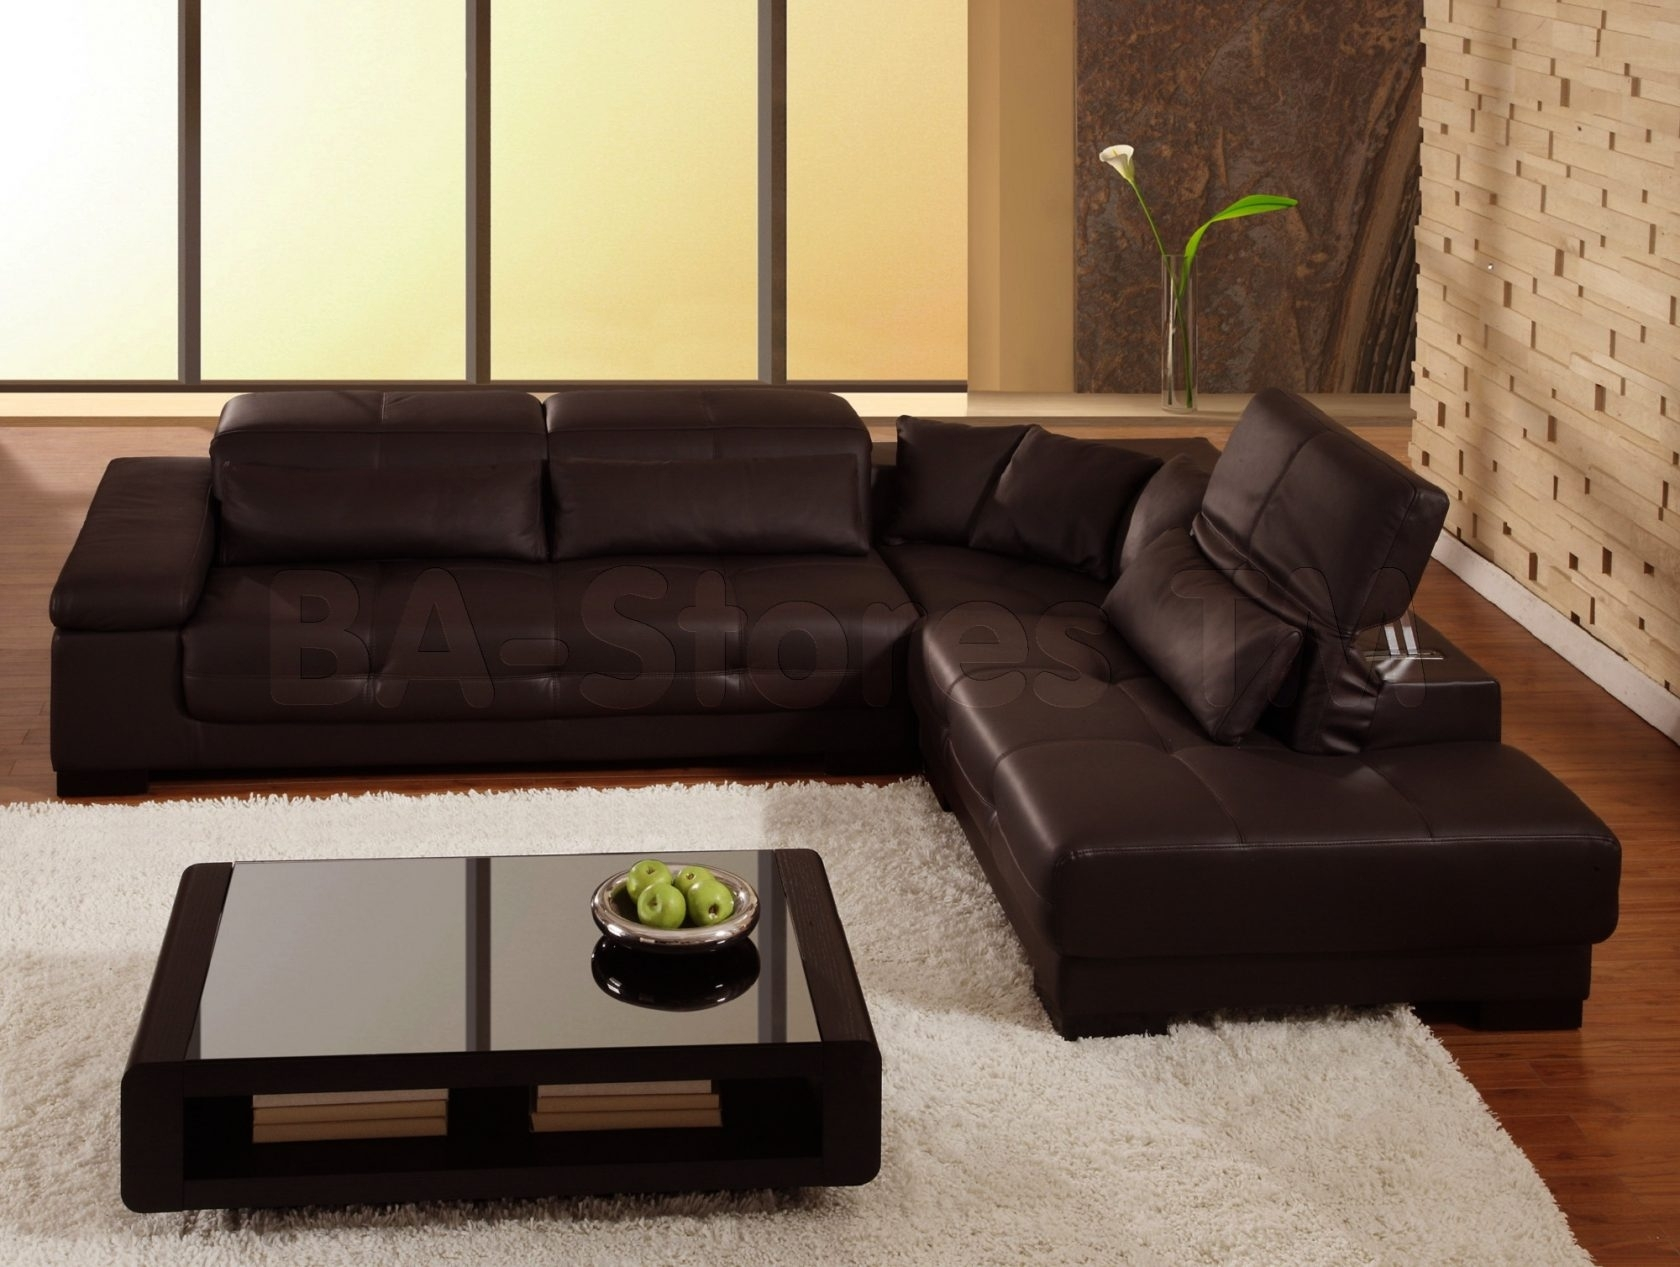 Glamorous Brown Leather Sectional Sofa Clearance 15 For Sectional With Regard To Clearance Sectional Sofas (Image 8 of 10)